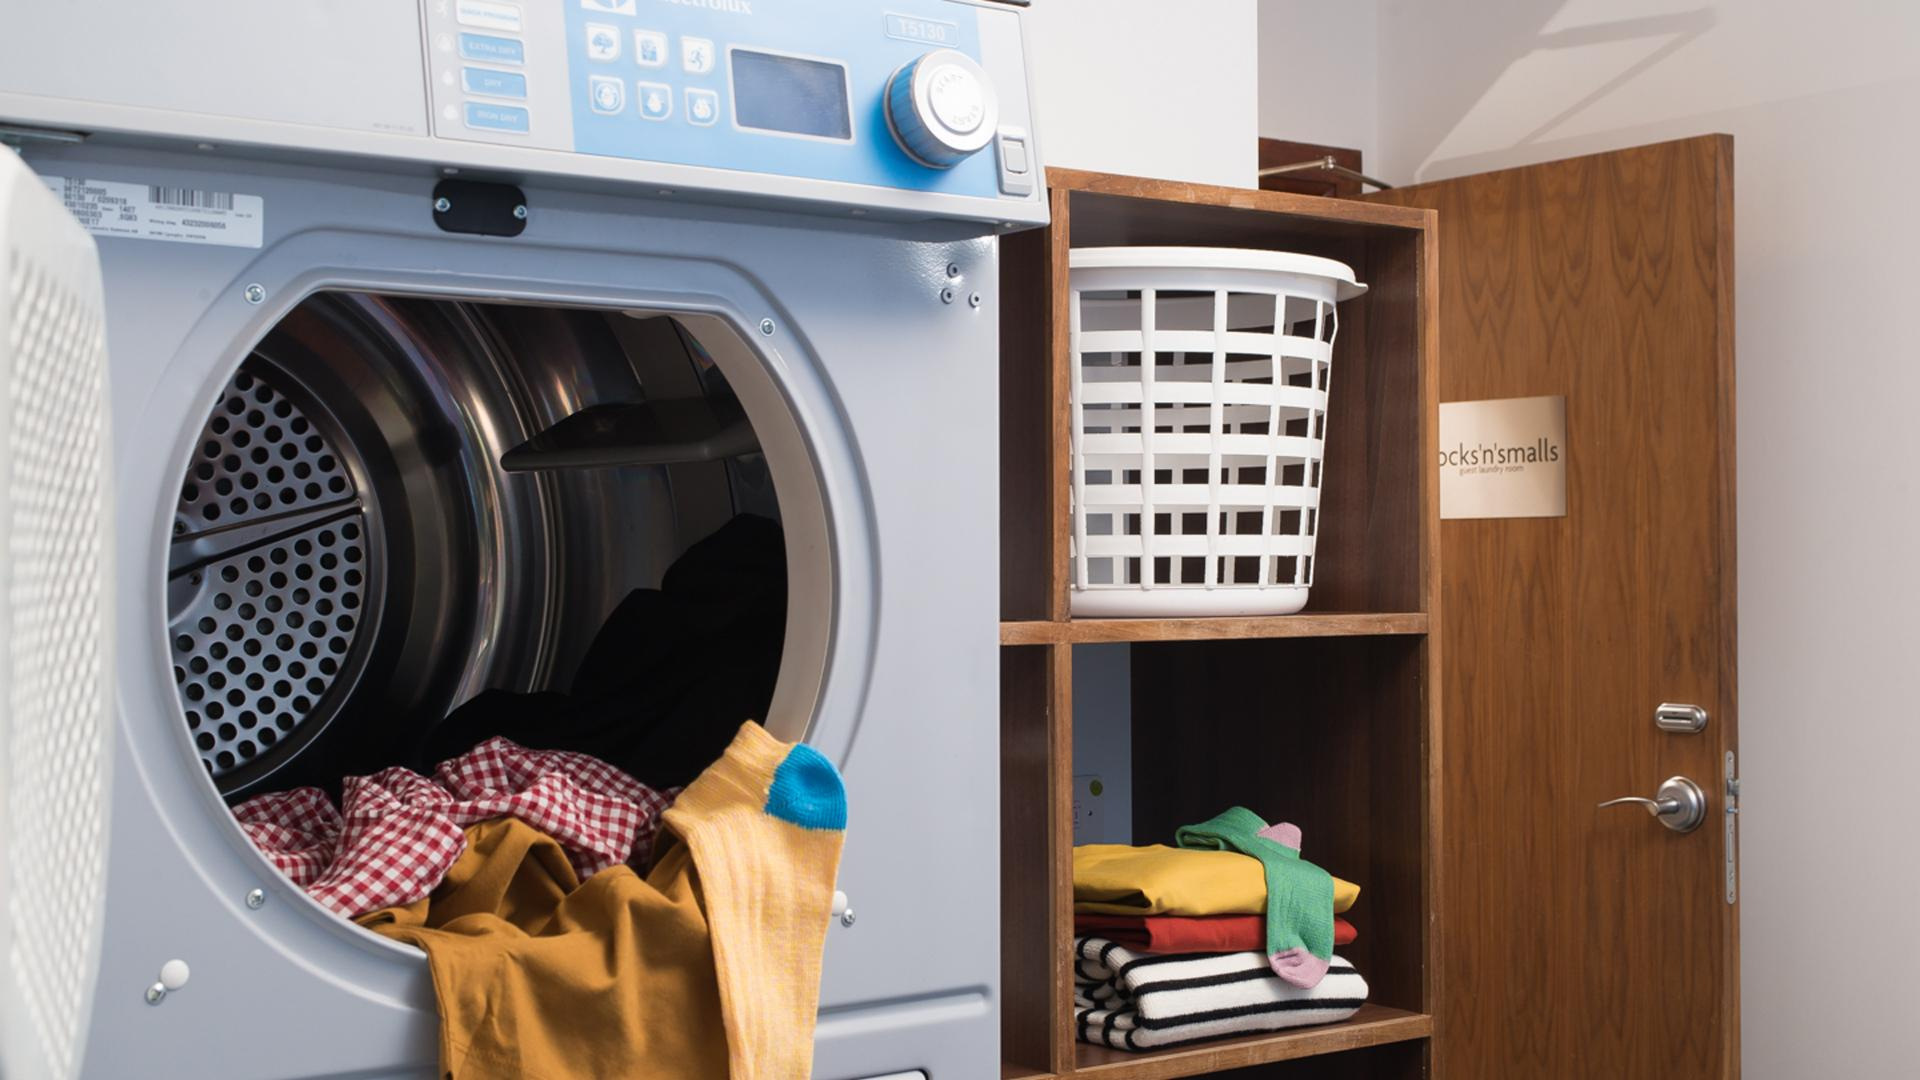 Laundry Facilities at Newcastle Staybridge Suites Newcastle